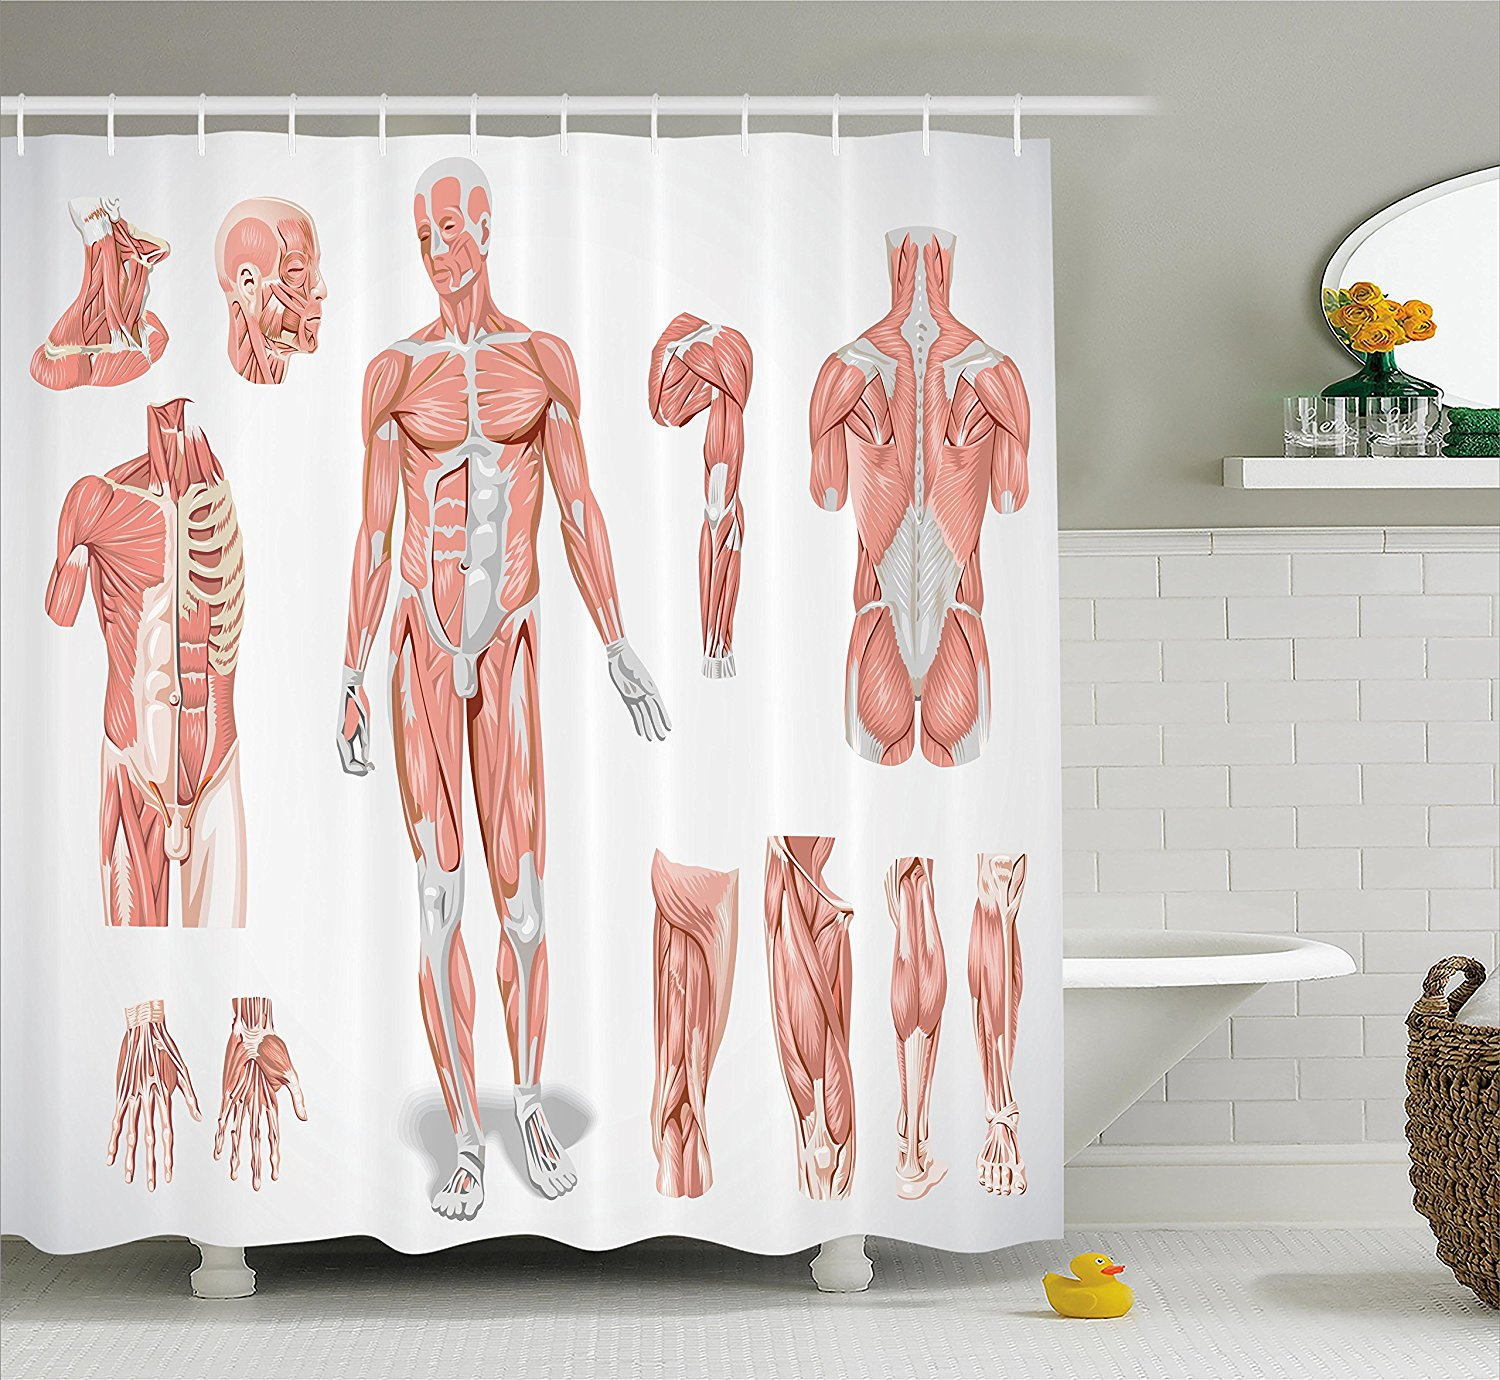 Coral Ambesonne Human Anatomy Shower Curtain Fabric Bathroom Decor Set with Hooks Male and Female Bodies with Inner Mass Build Display Muscle System Graphic Print